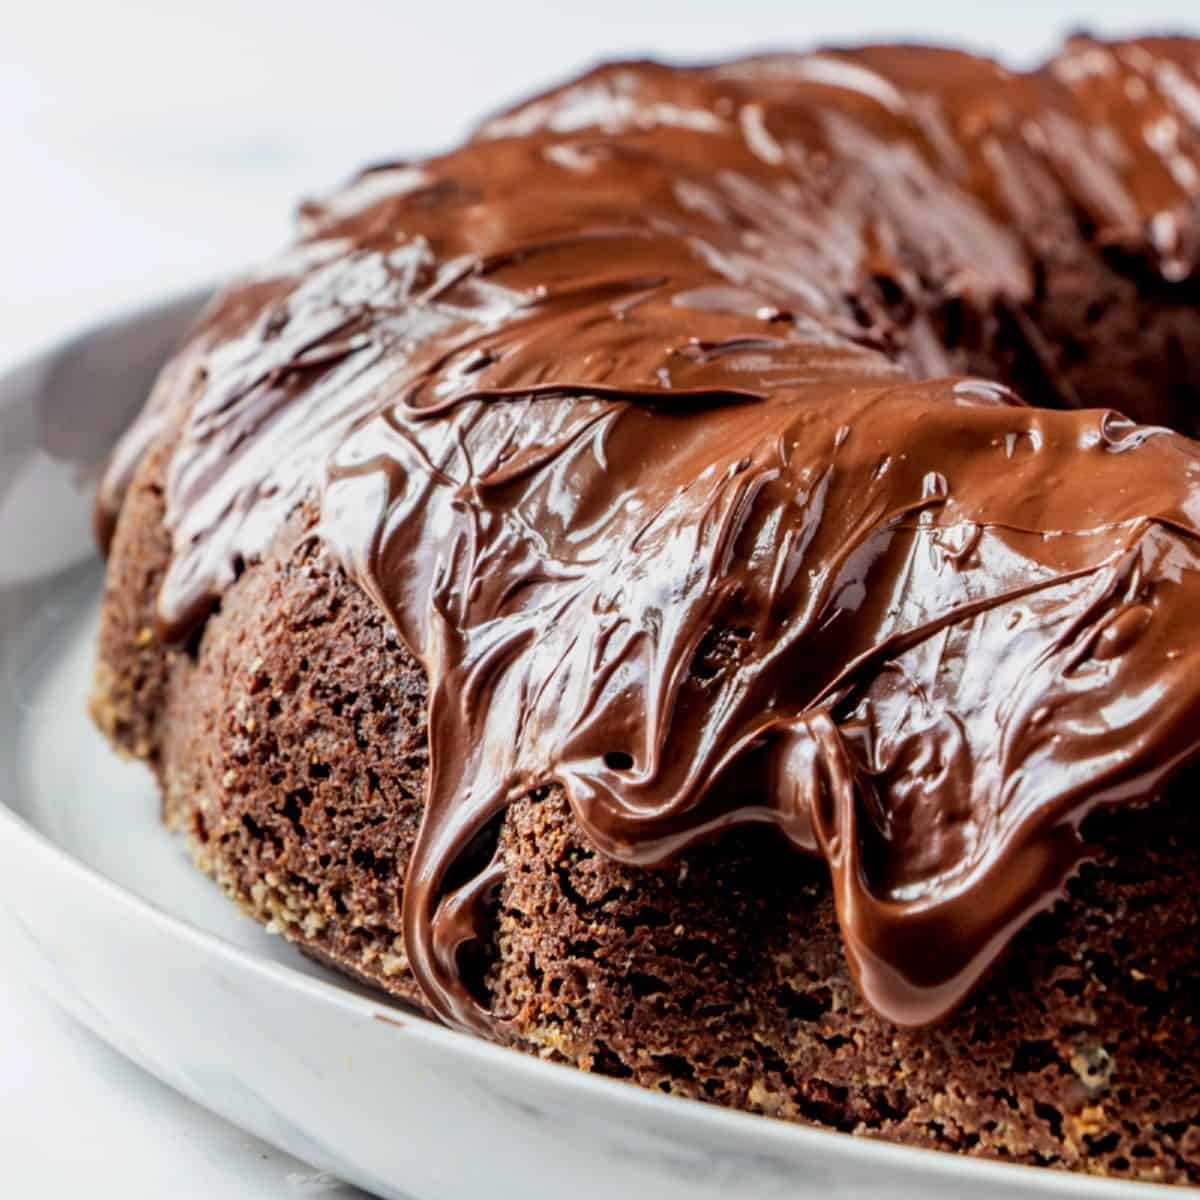 Close up photo of half of a chocolate bundt cake with thick frosting drizzled over all the nooks and crannies